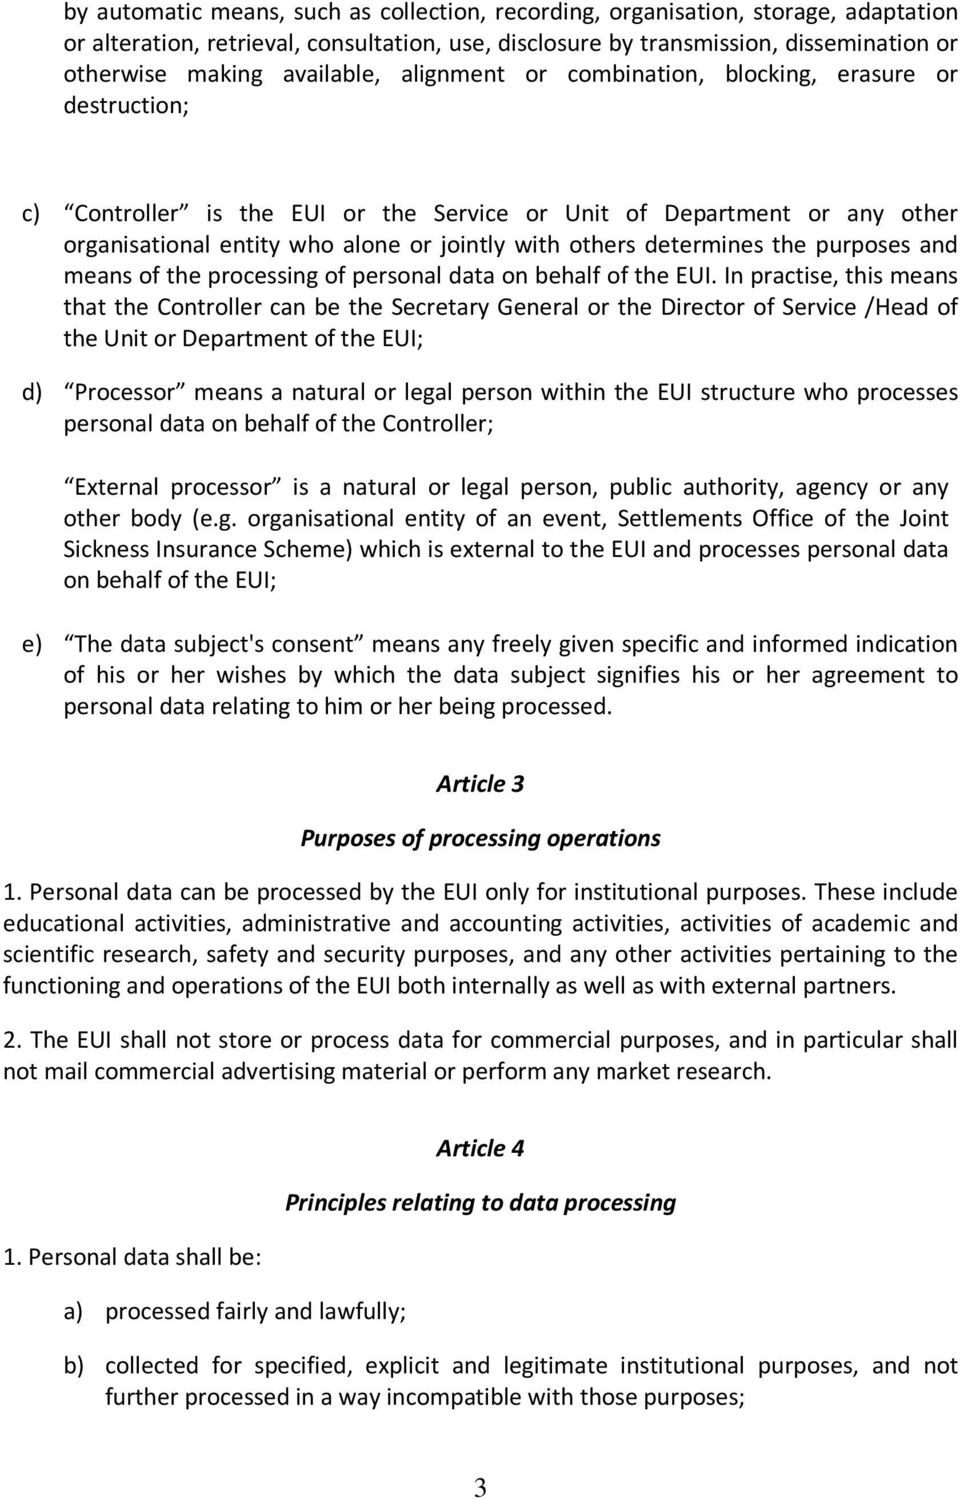 others determines the purposes and means of the processing of personal data on behalf of the EUI.